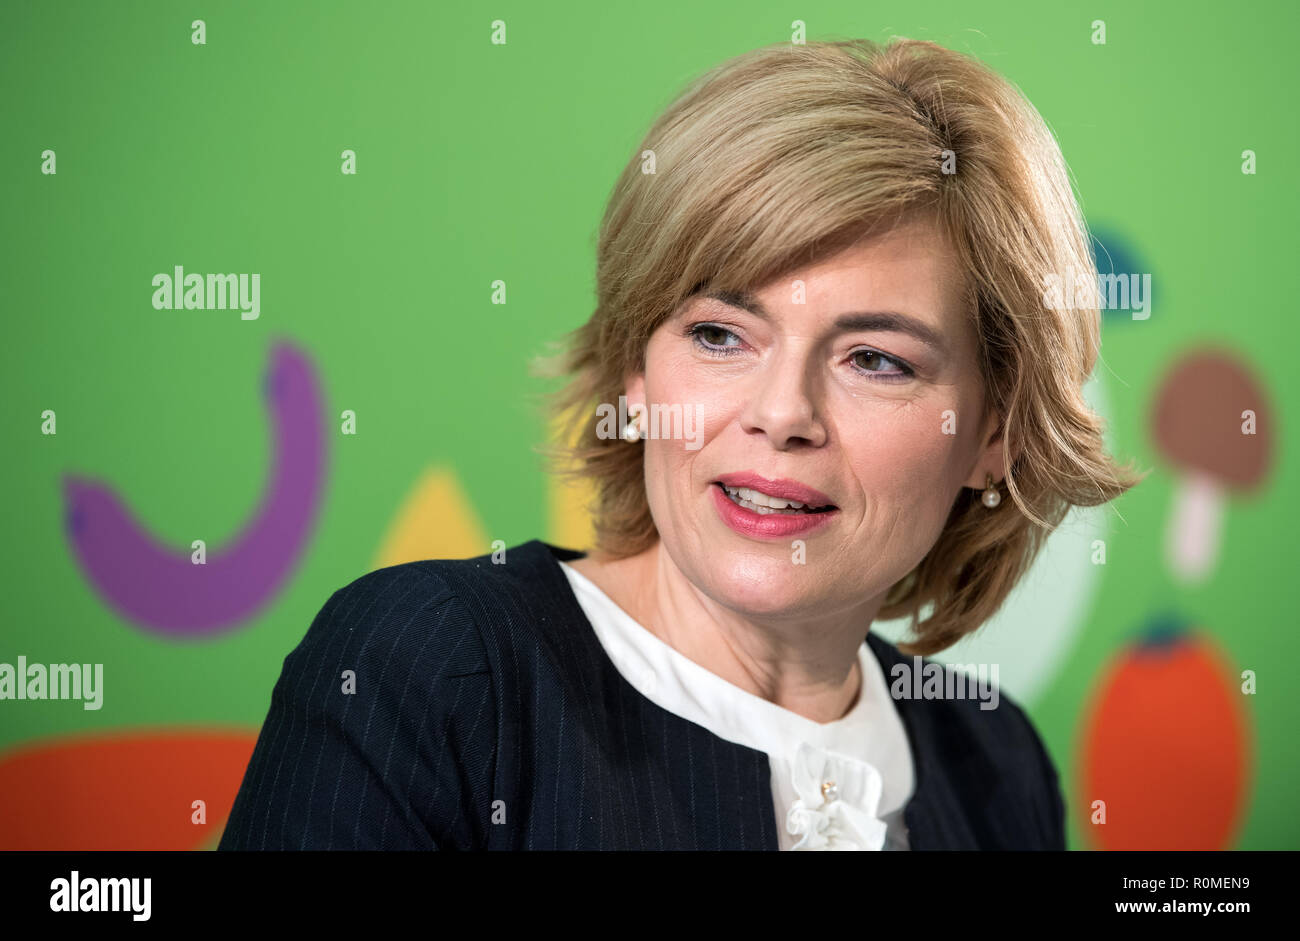 Berlin, Germany. 06th Nov, 2018. Julia Klöckner (CDU), Federal Minister of Food and Agriculture, spoke at a press conference with Federal Health Minister Spahn on the occasion of the presentation of a study by the German Society for Nutrition on cost and price structures in school catering at the Federal Congress on School Catering. More than three million pupils at all-day schools eat lunch every day at school. Credit: Bernd von Jutrczenka/dpa/Alamy Live News - Stock Image